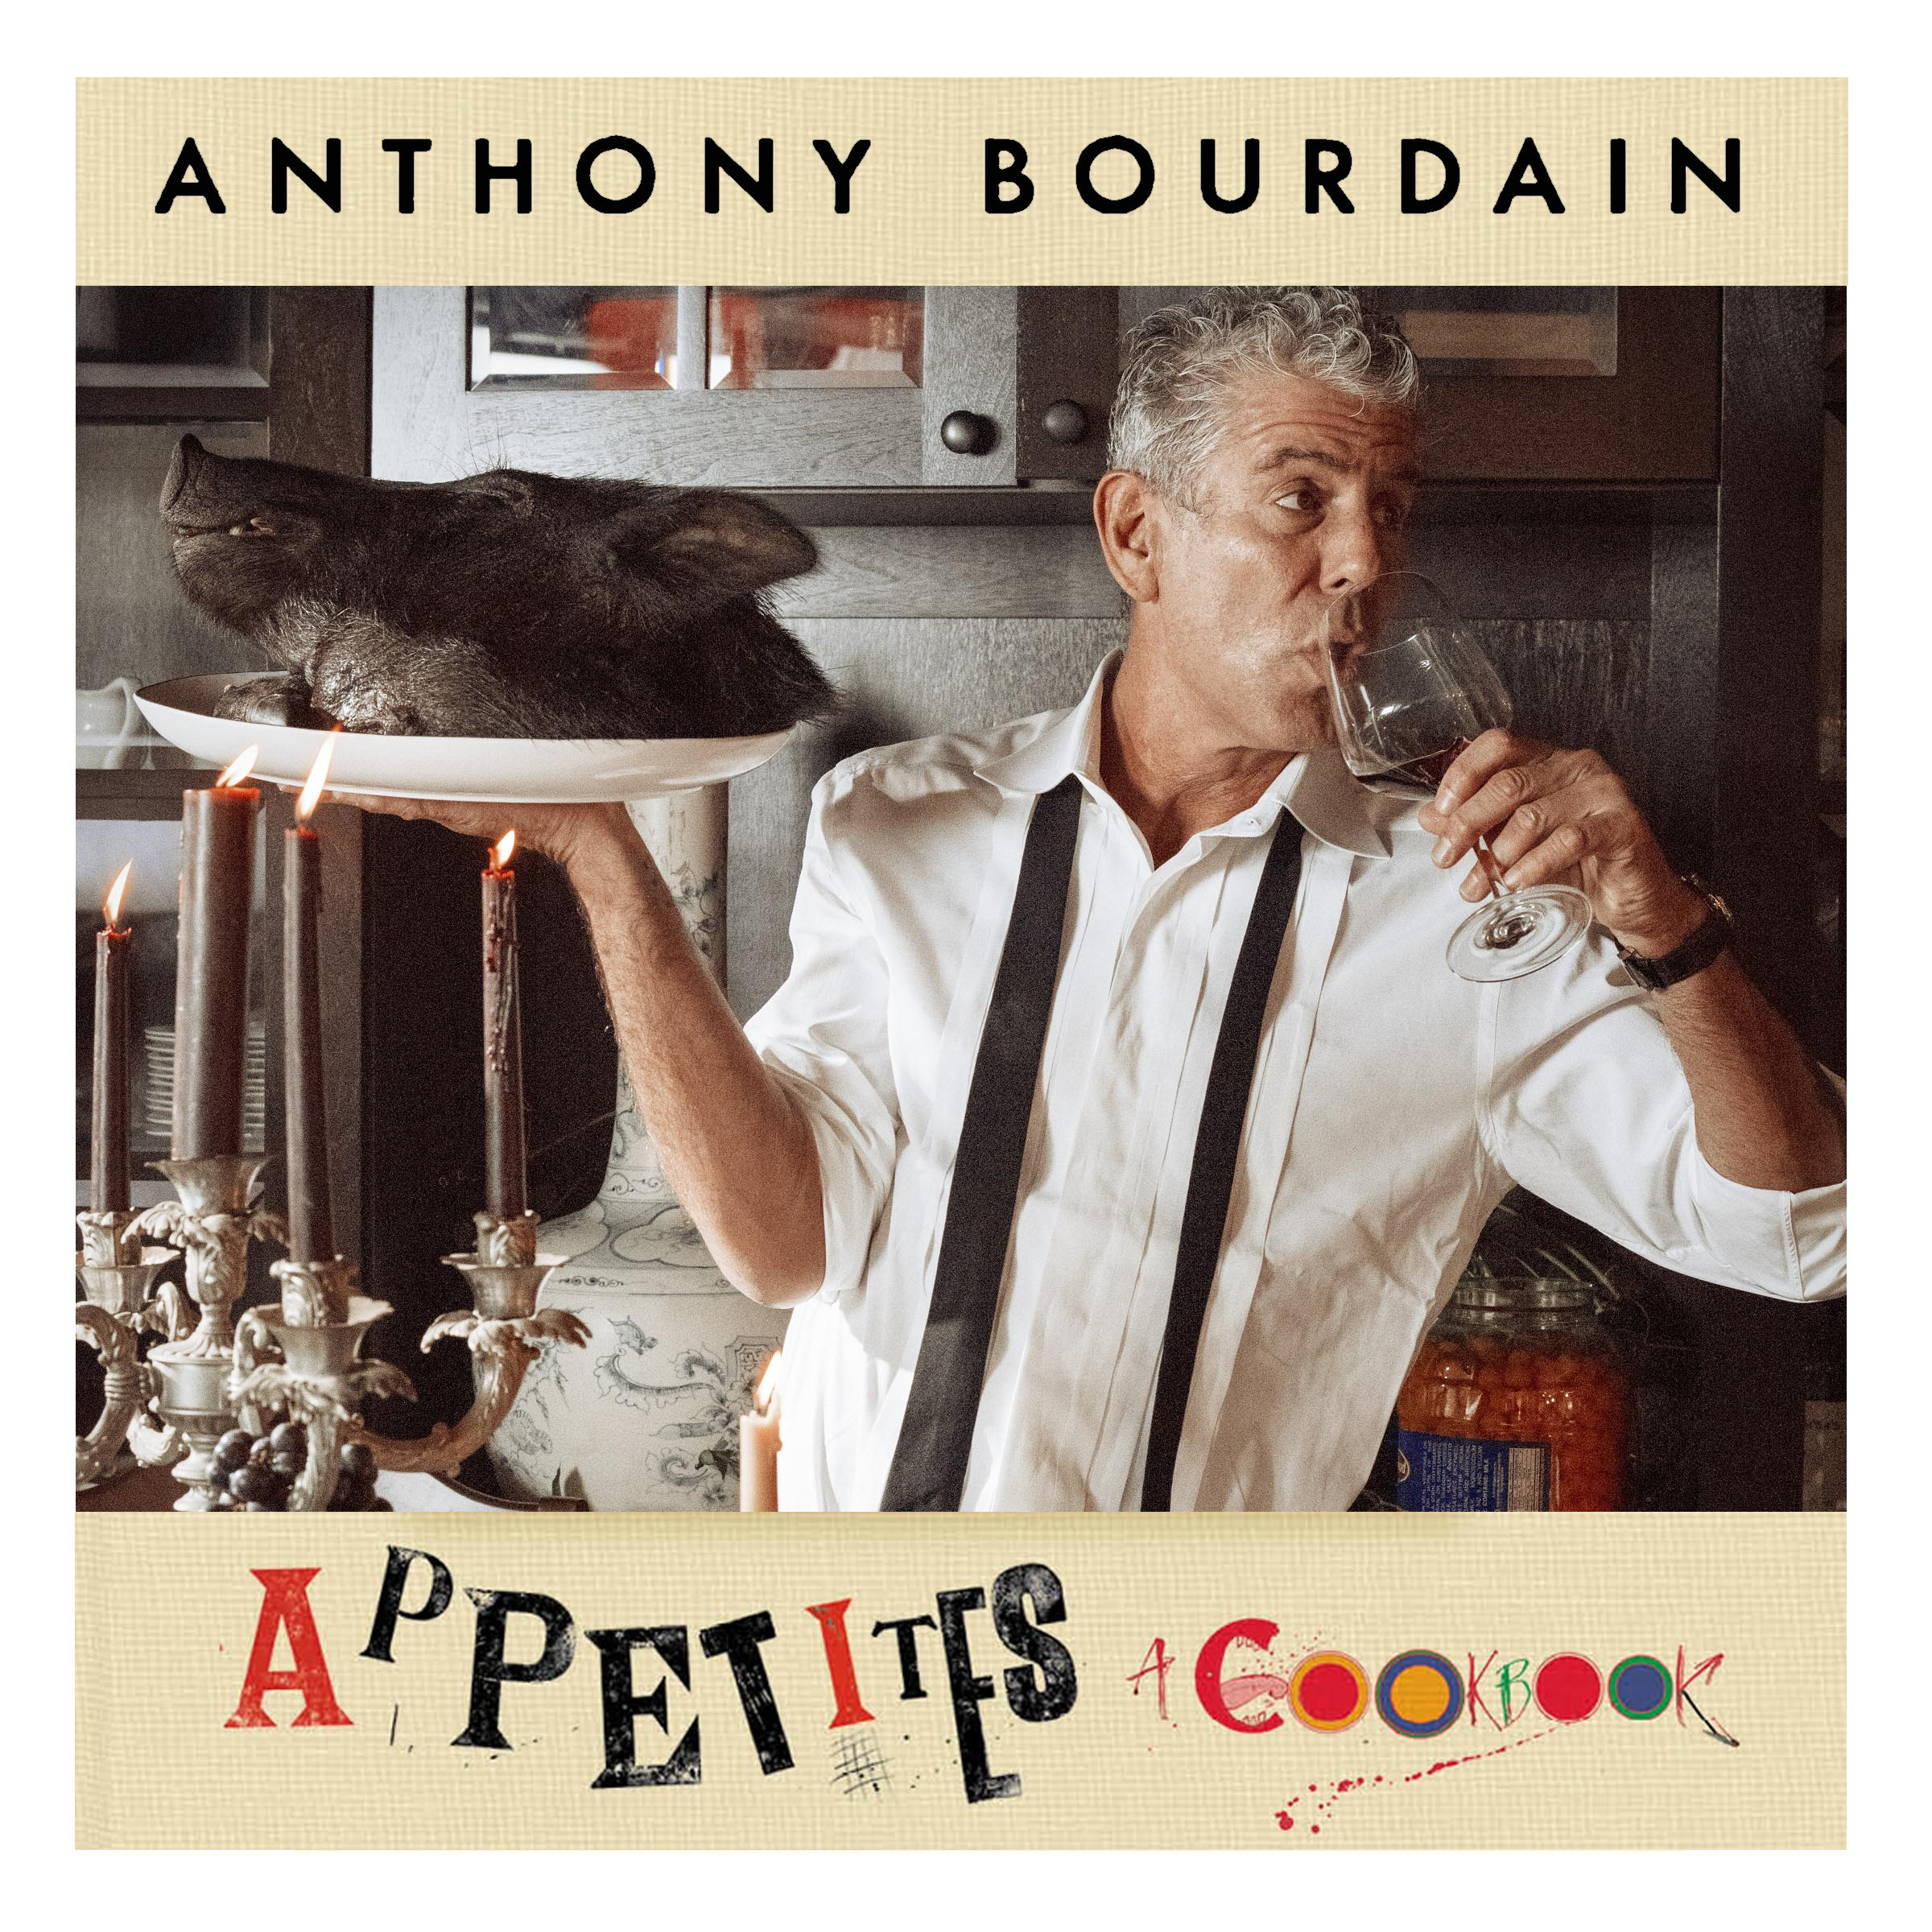 Appetites by Anthony Bourdain